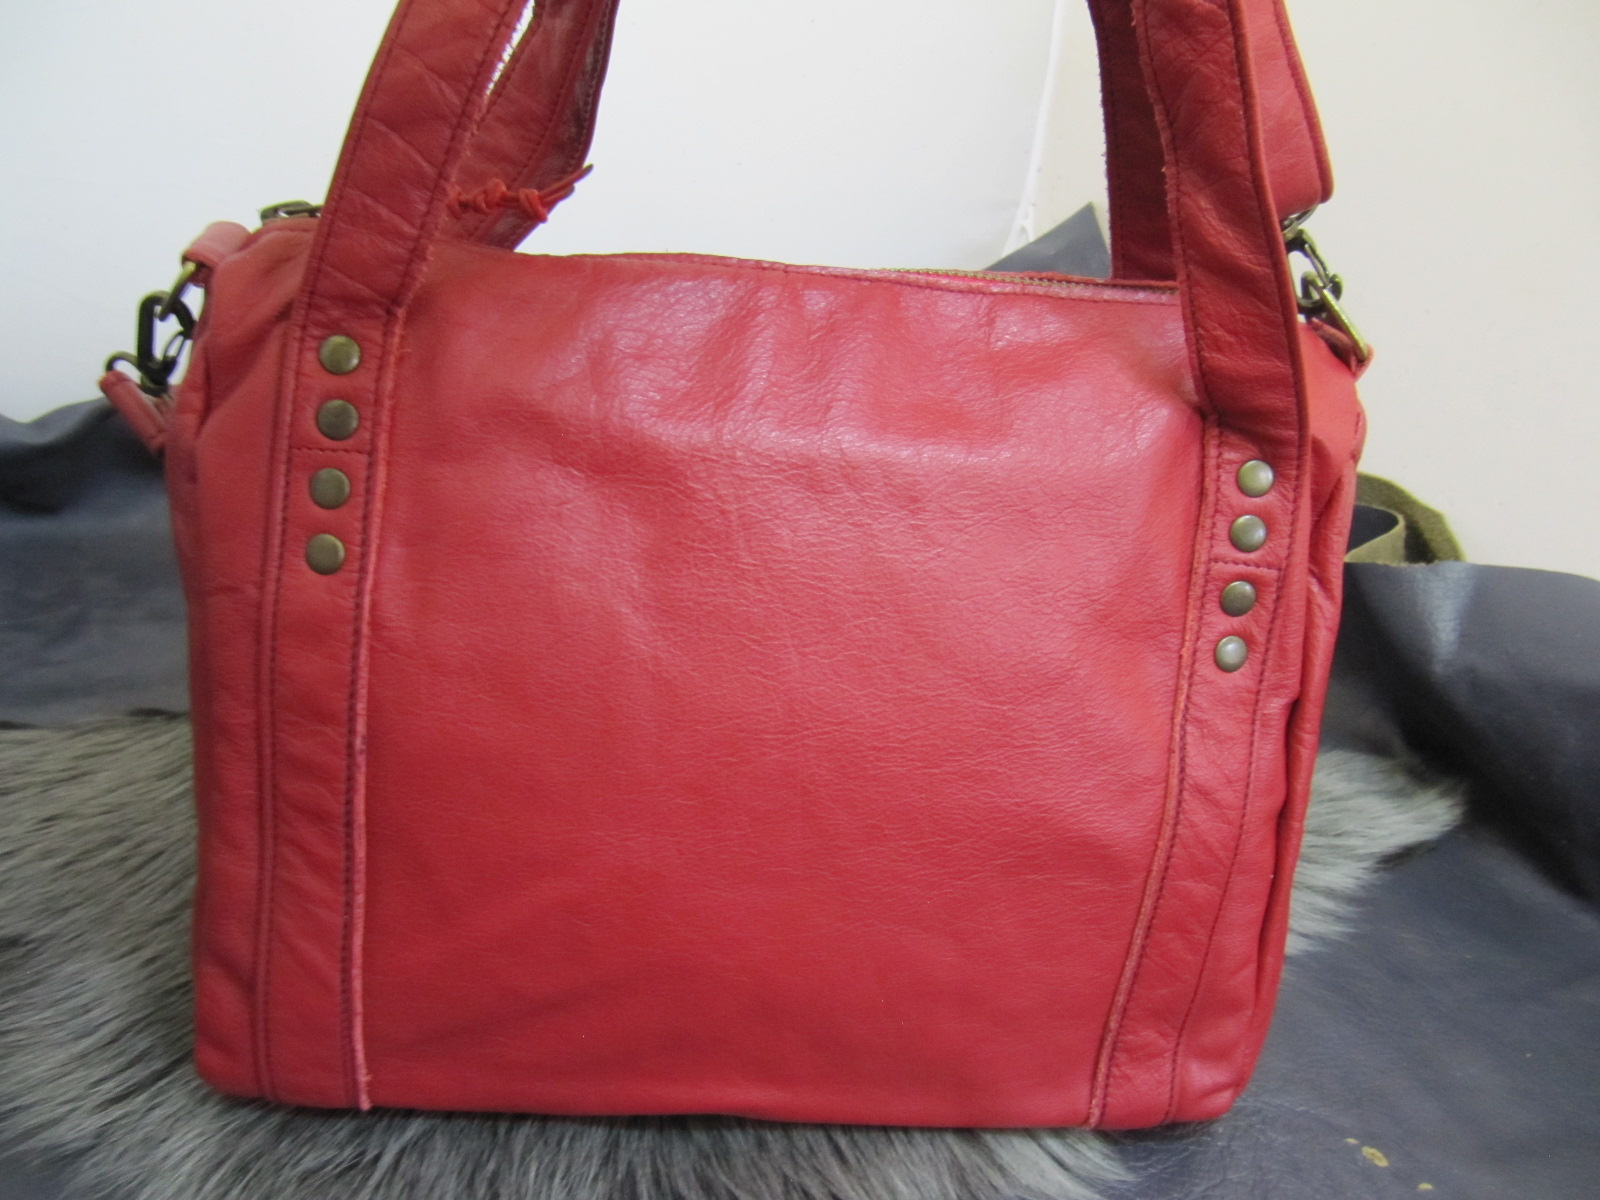 Red leather Bowling style handbag